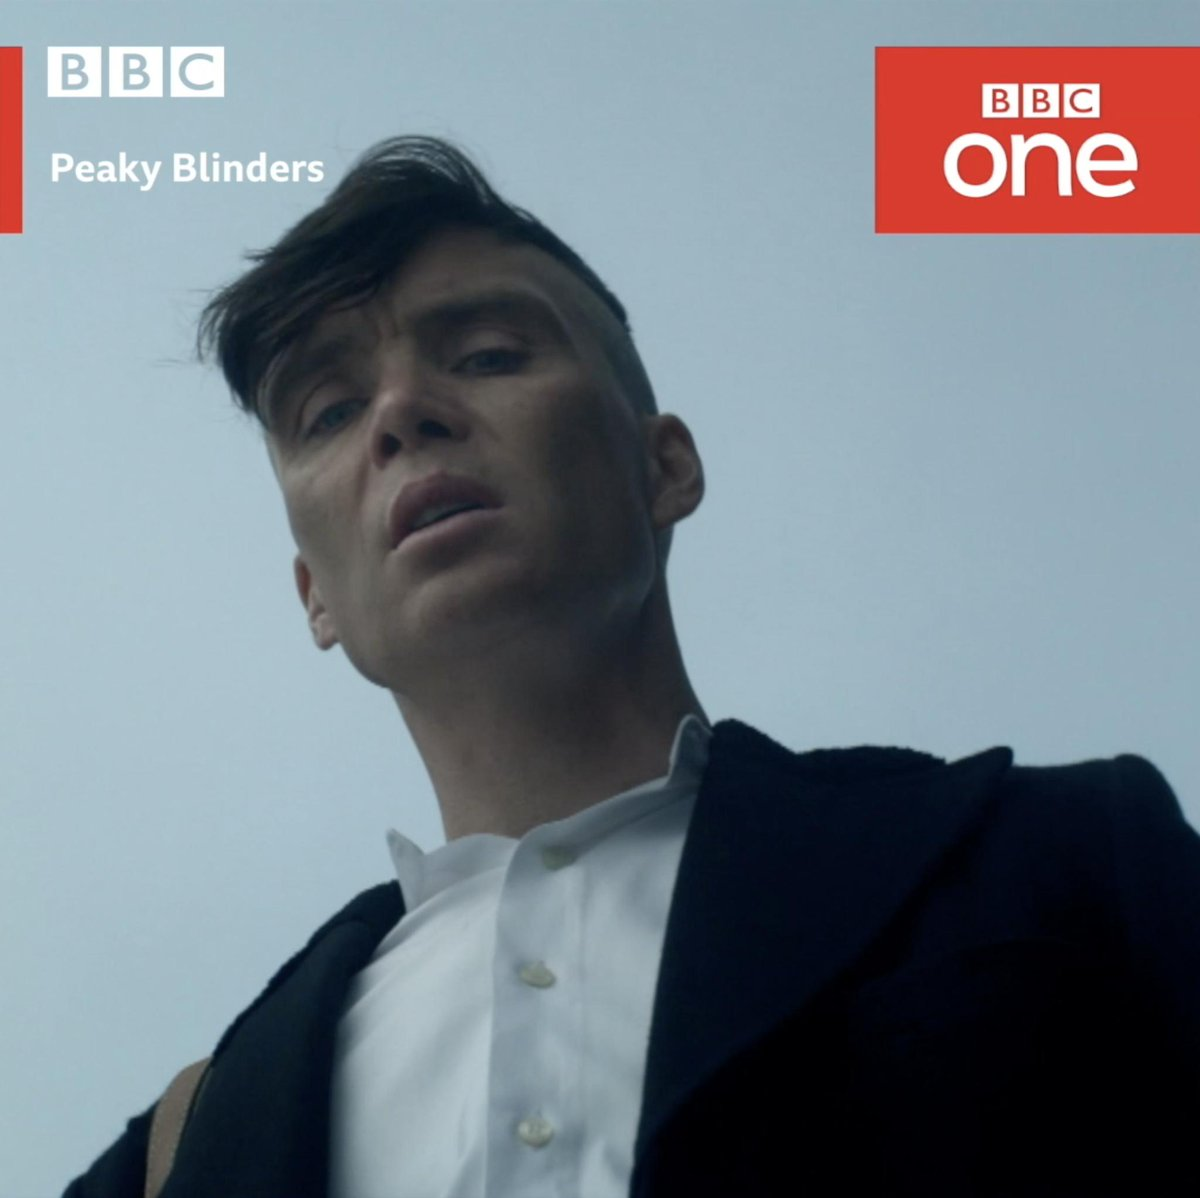 PREVIEW. Heres your first look at #PeakyBlinders Series 5. Starts Sunday at 9pm on @bbcone, with episode two on Bank Holiday Monday at 9:30pm.